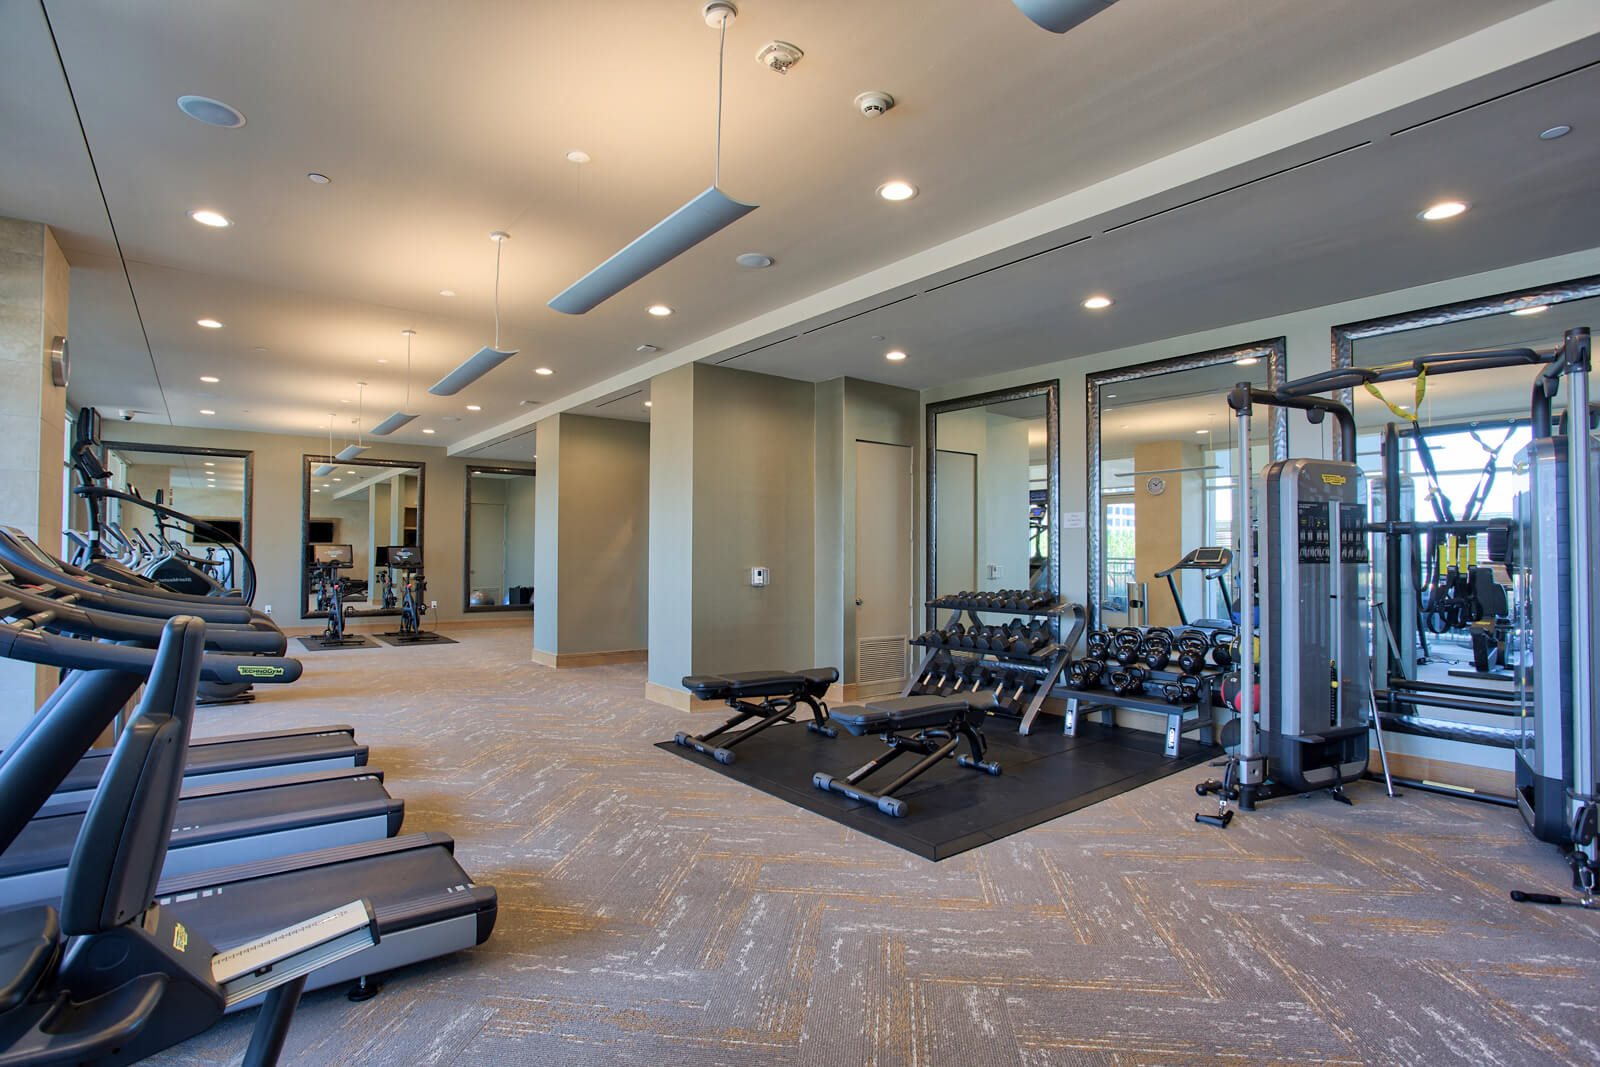 Technogym Equipment in Fitness Center at The Jordan by Windsor, 2355 Thomas Ave, Dallas